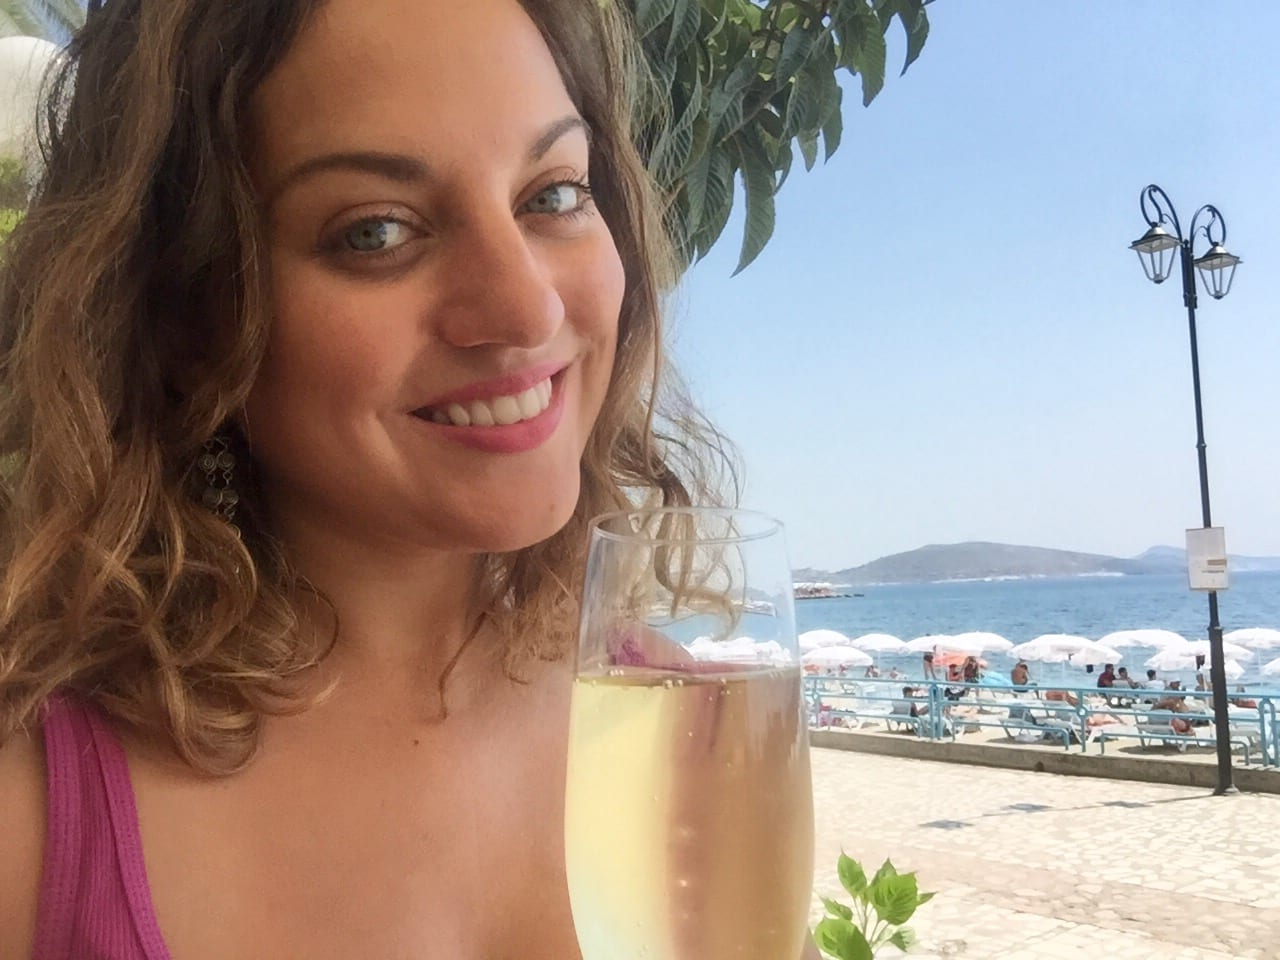 Kate with Prosecco in Saranda